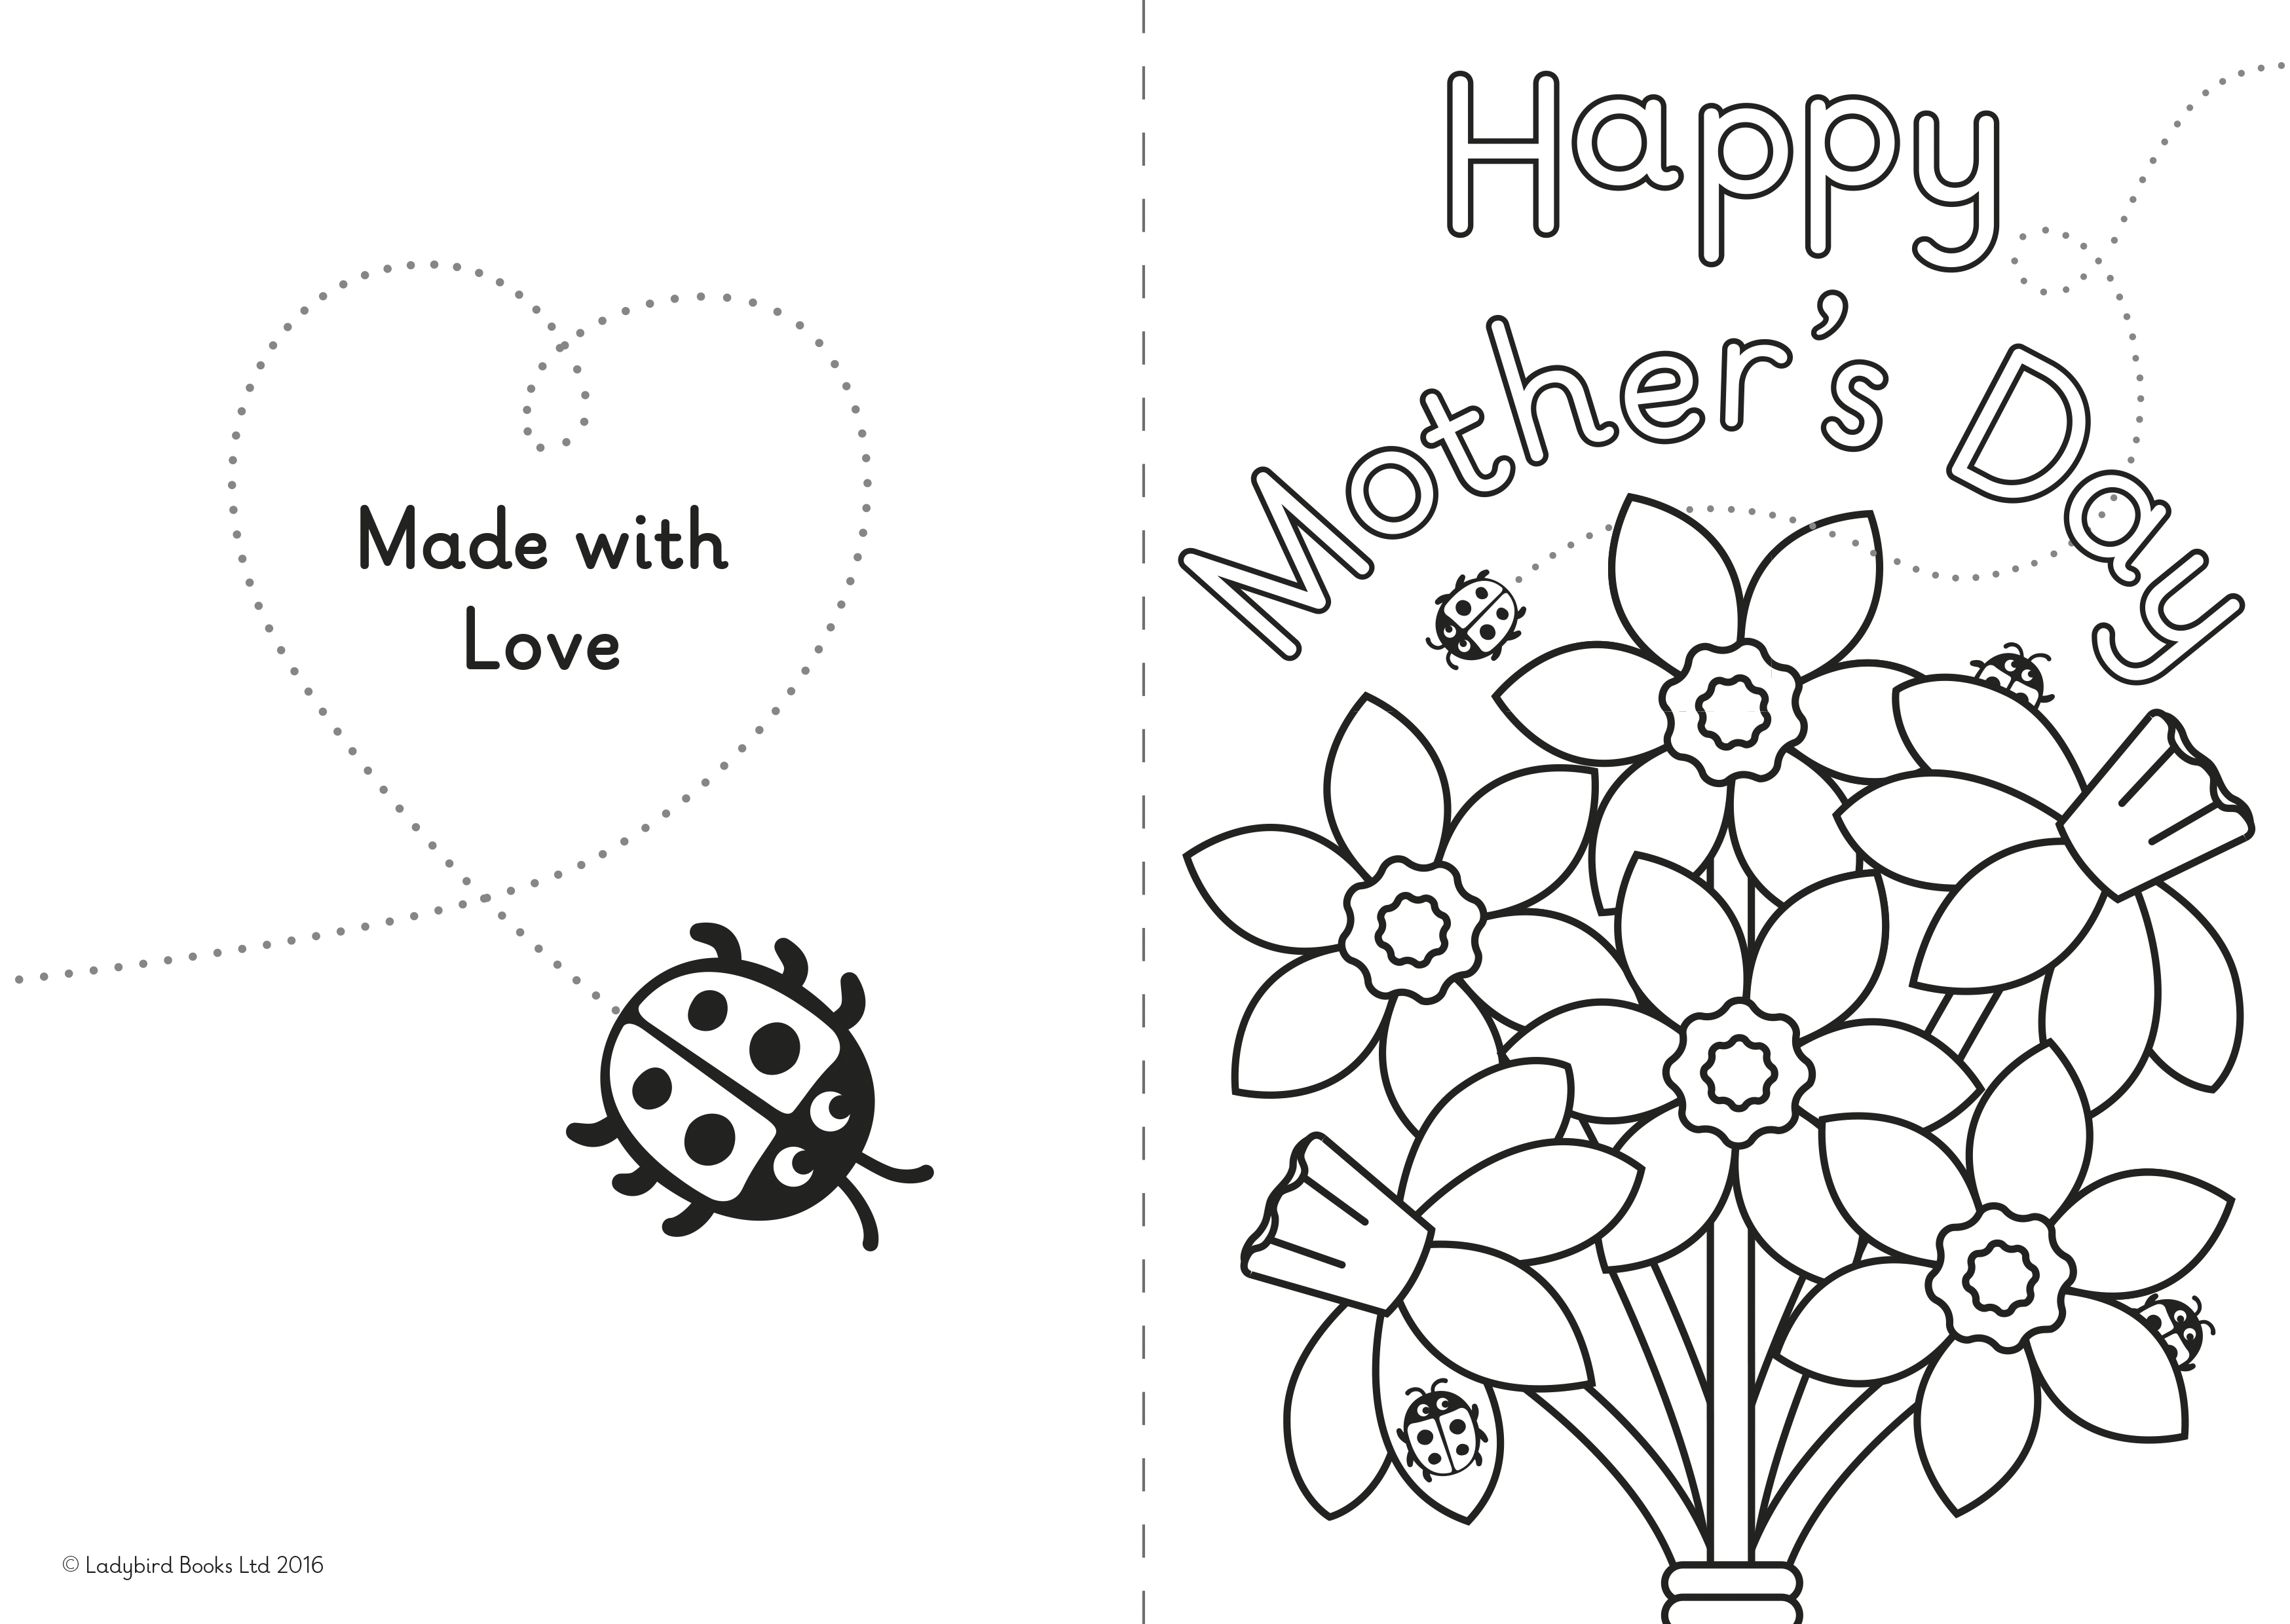 mothers day cards drawing at getdrawings com